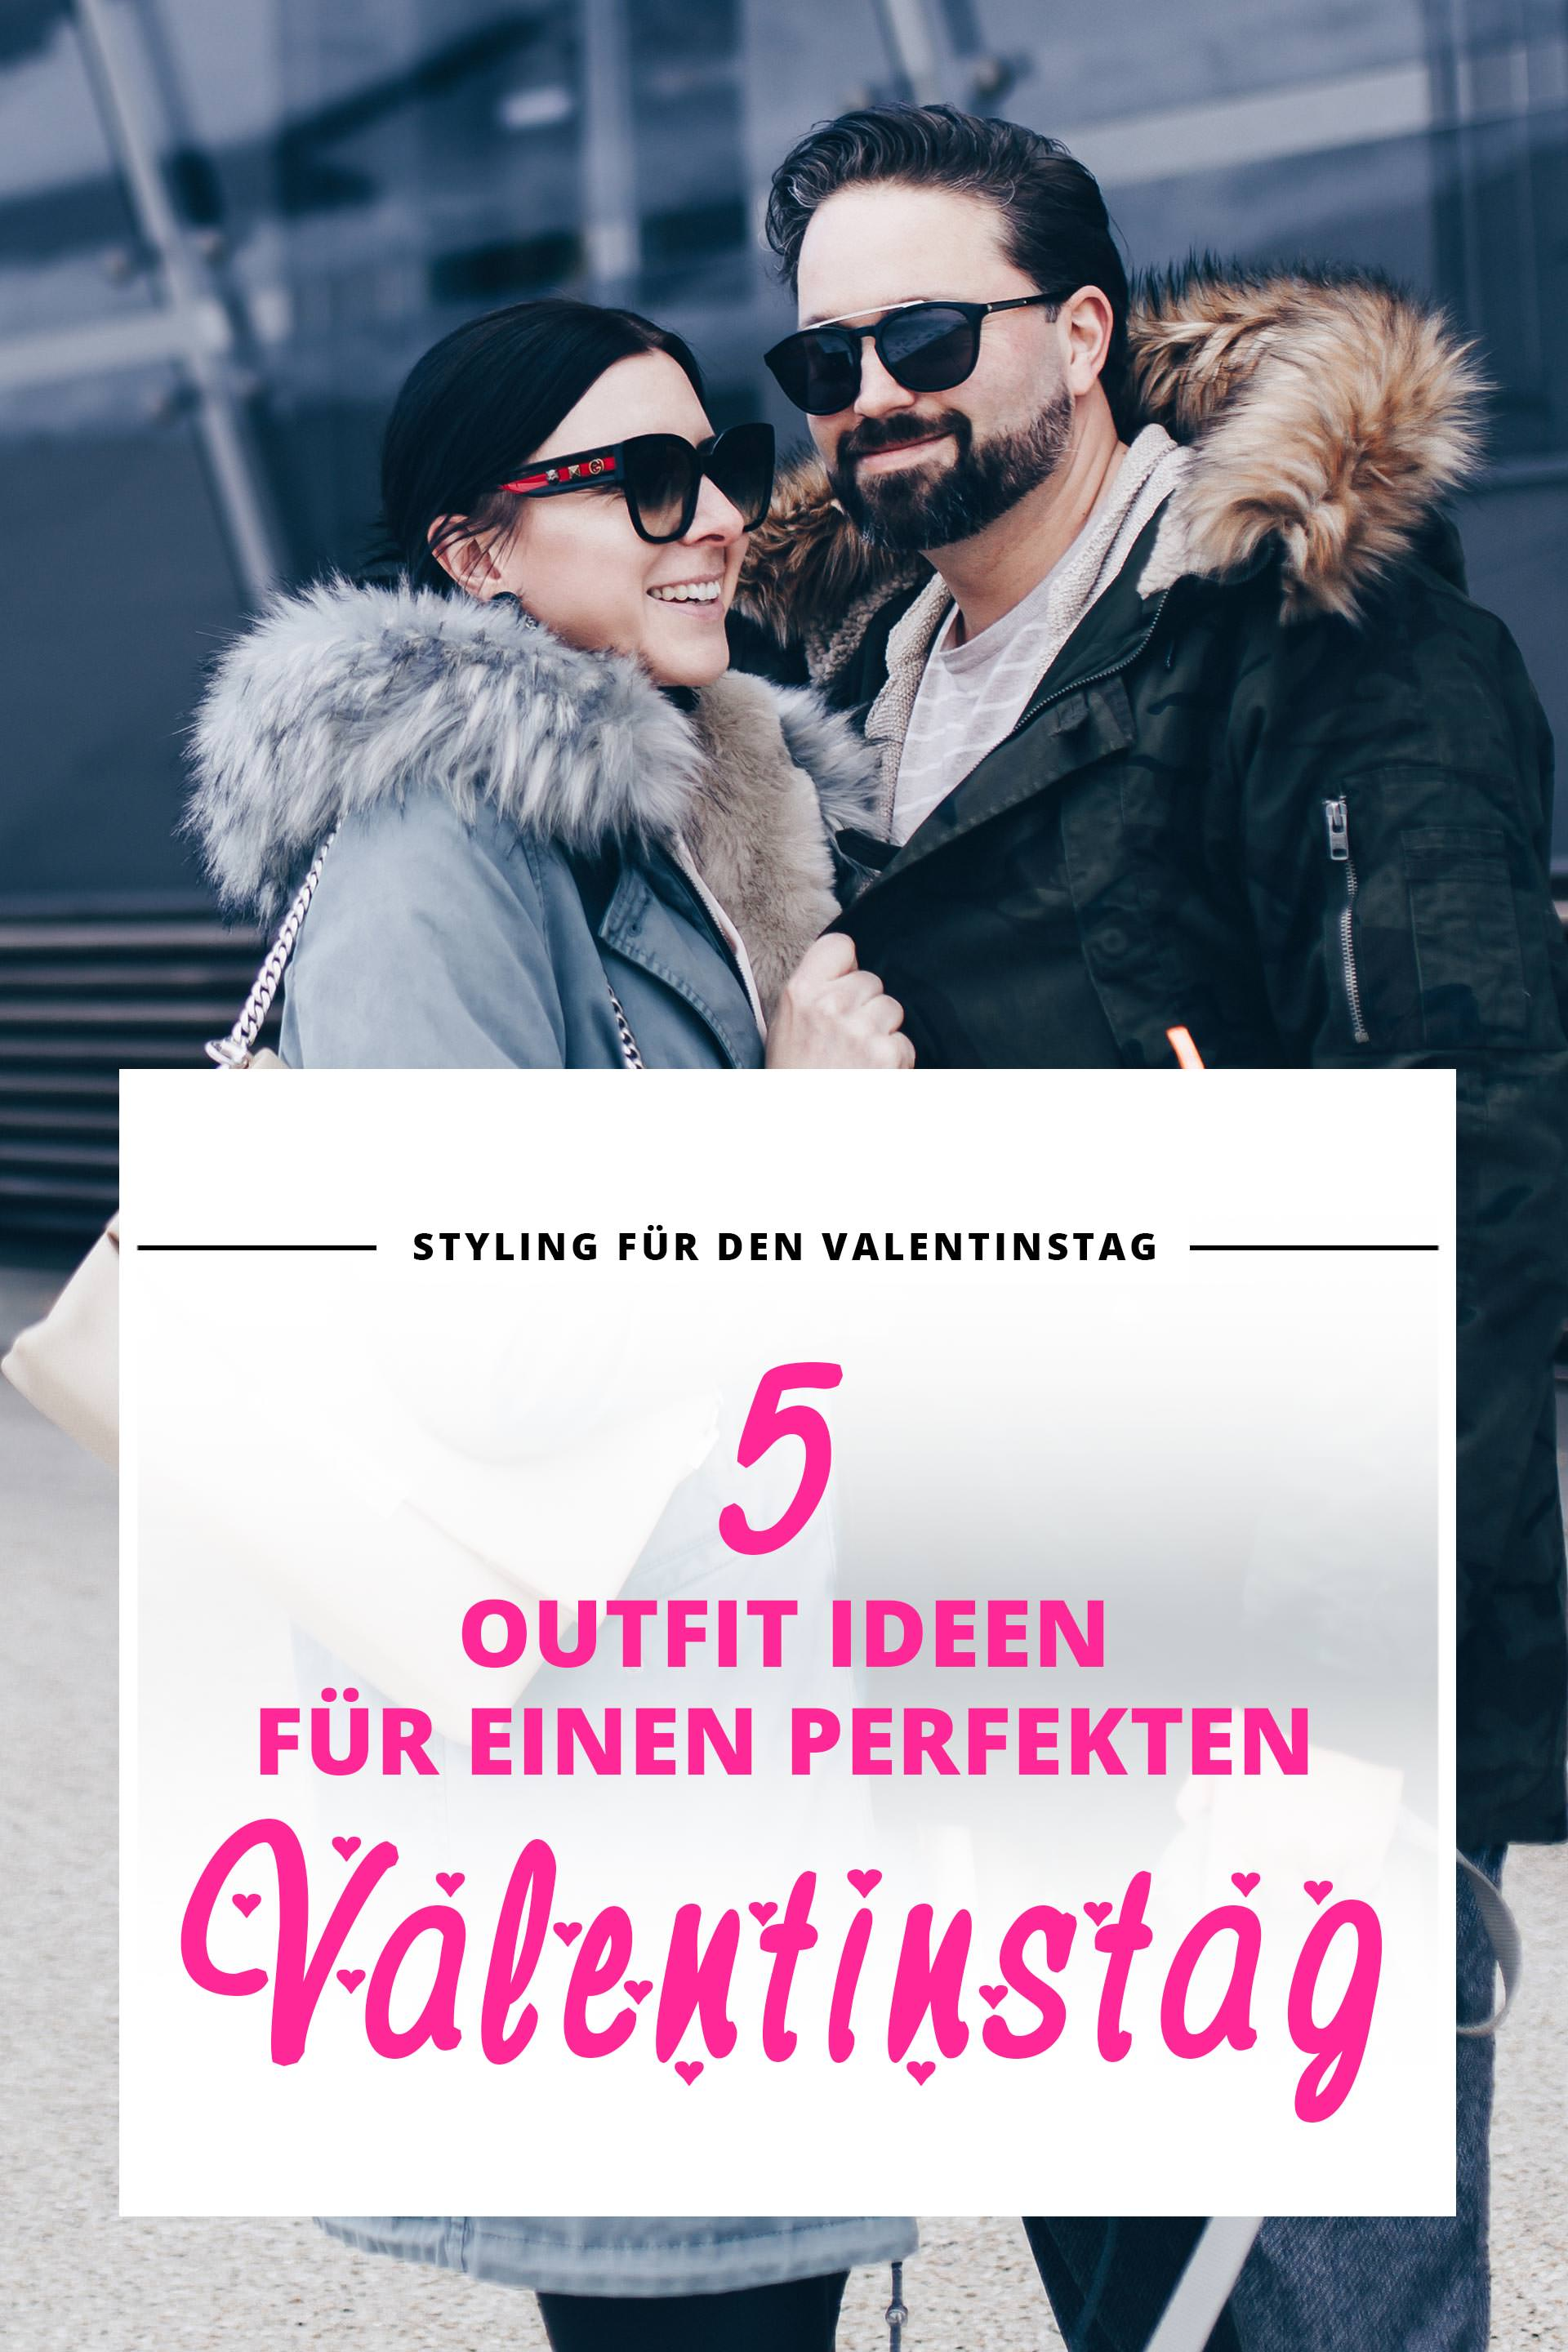 perfektes Outfit für den Valentinstag, Valentinstag Outfit Ideen und Styling Tipps, Outfit Inspirationen, Fashion Blog, Modeblog, Outfits Blog, www.whoismocca.com